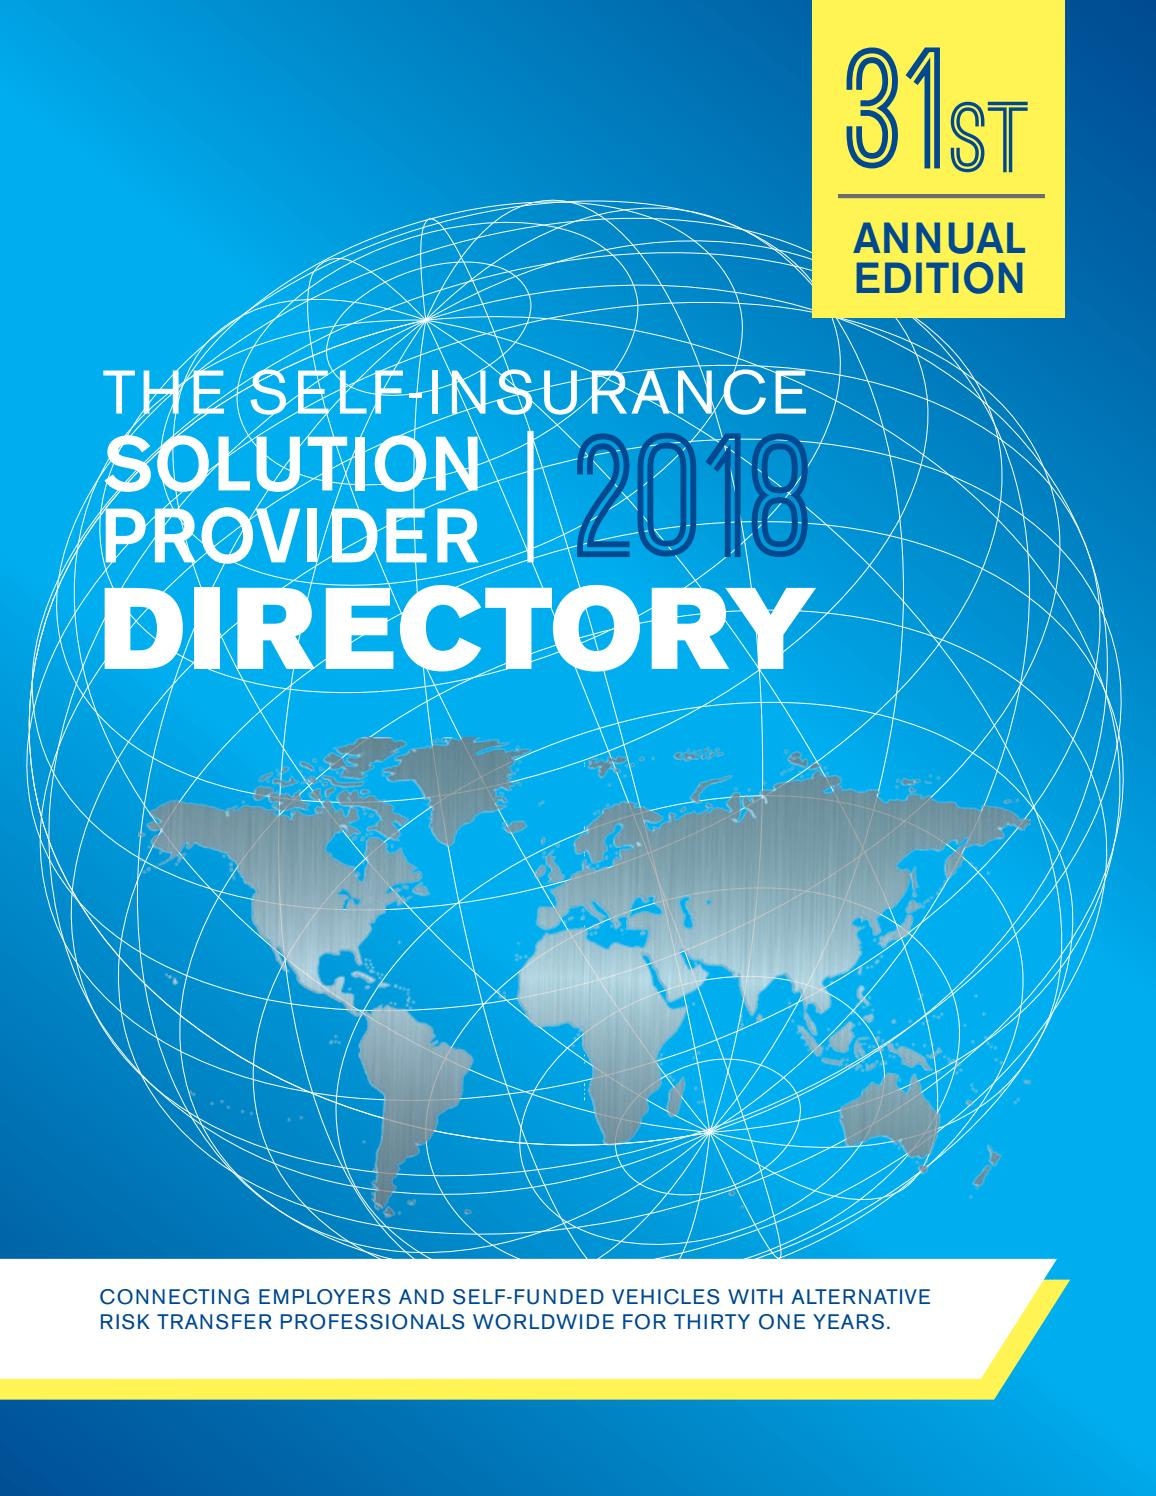 The Self Insurance Solution Provider Directory 2018 by SIPC